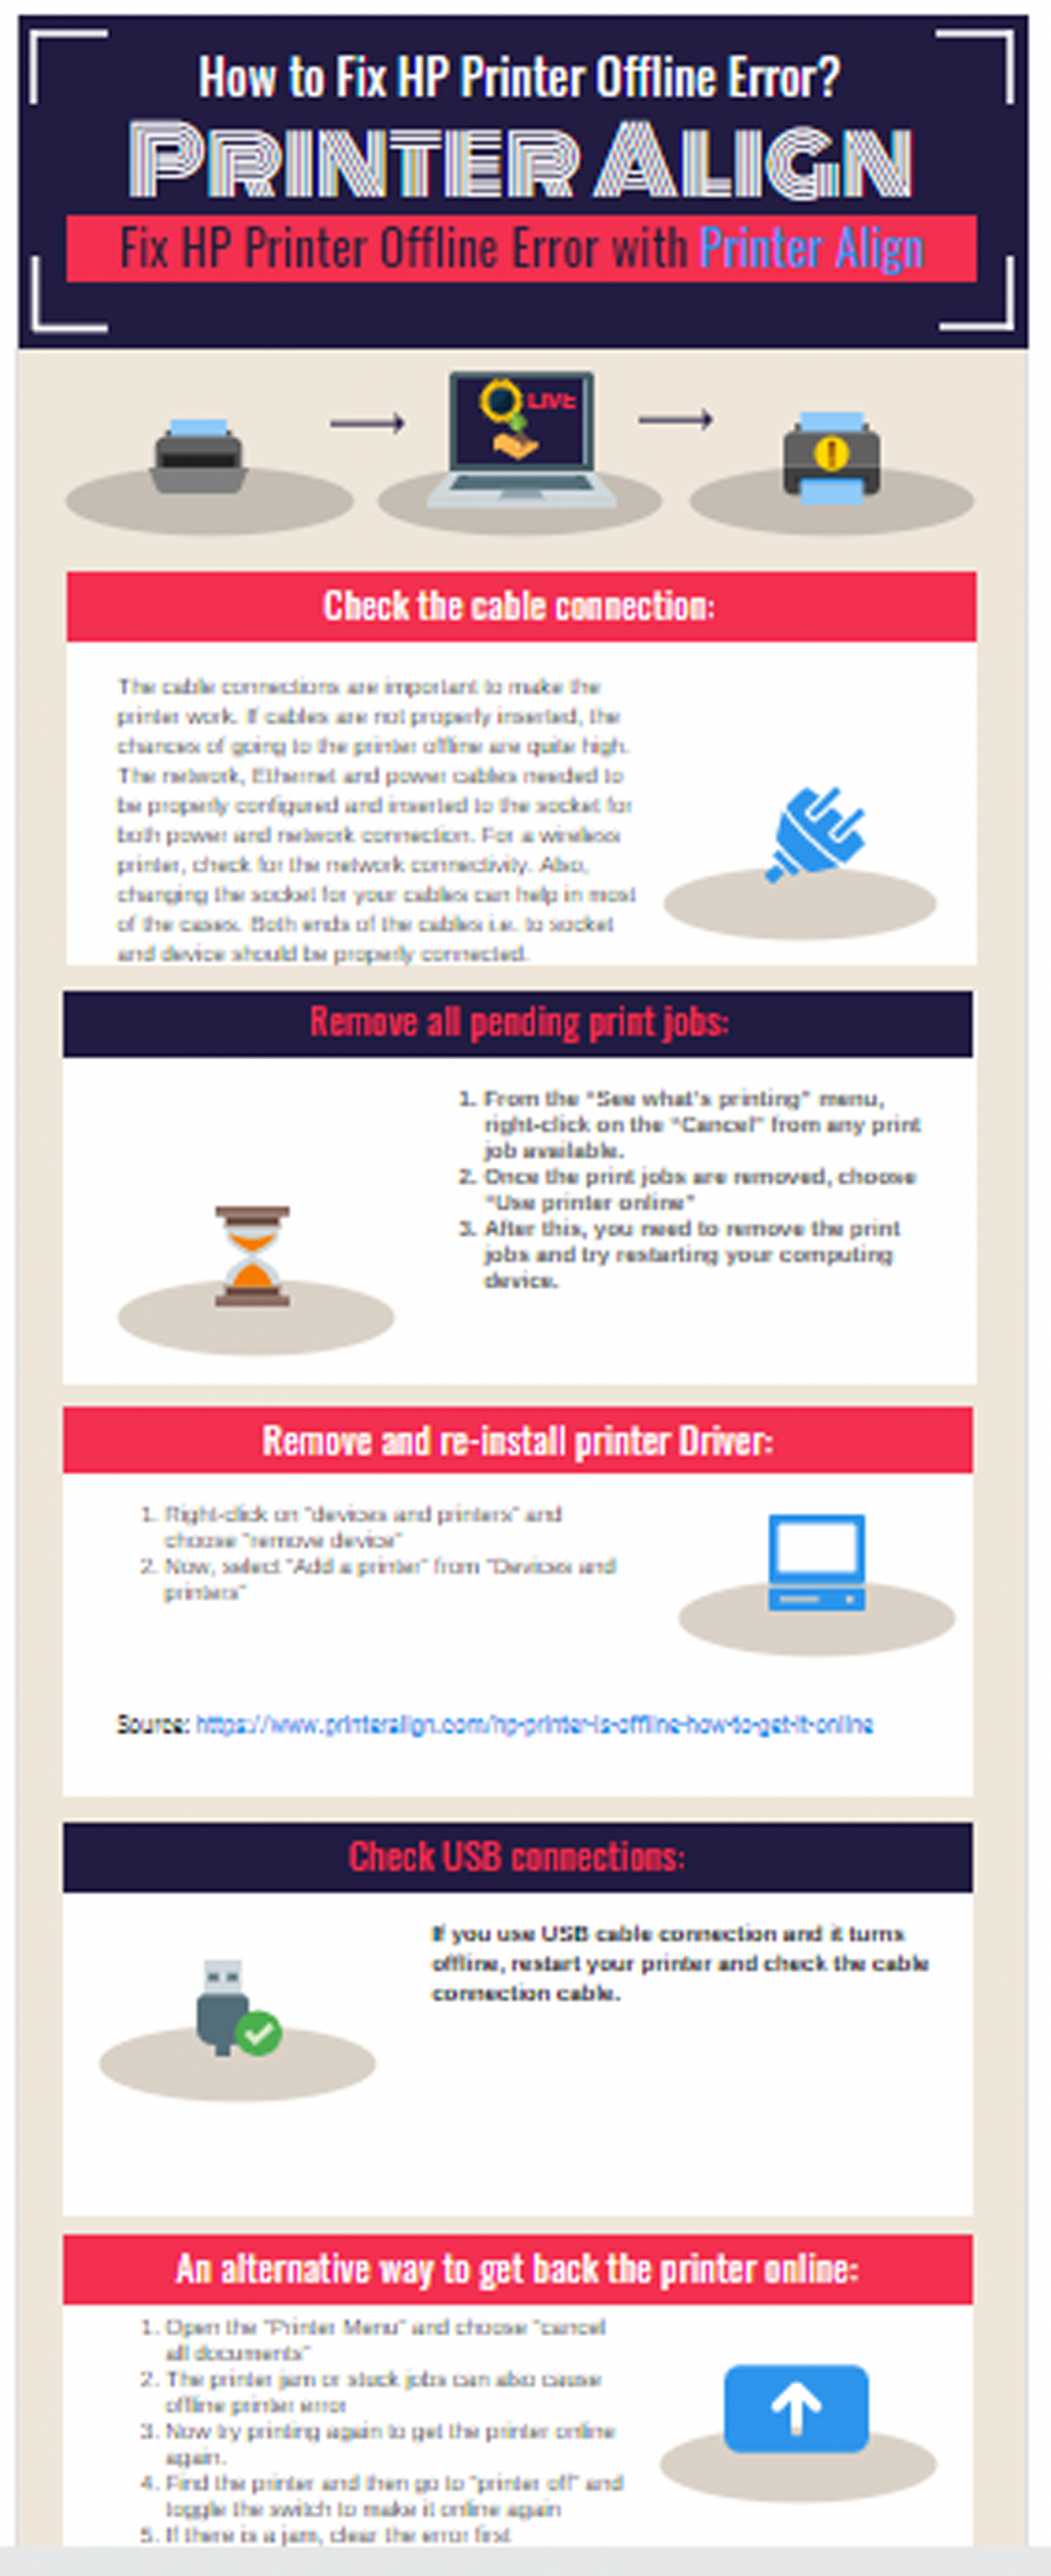 How to Fix HP Printer Offline Error? Infographic